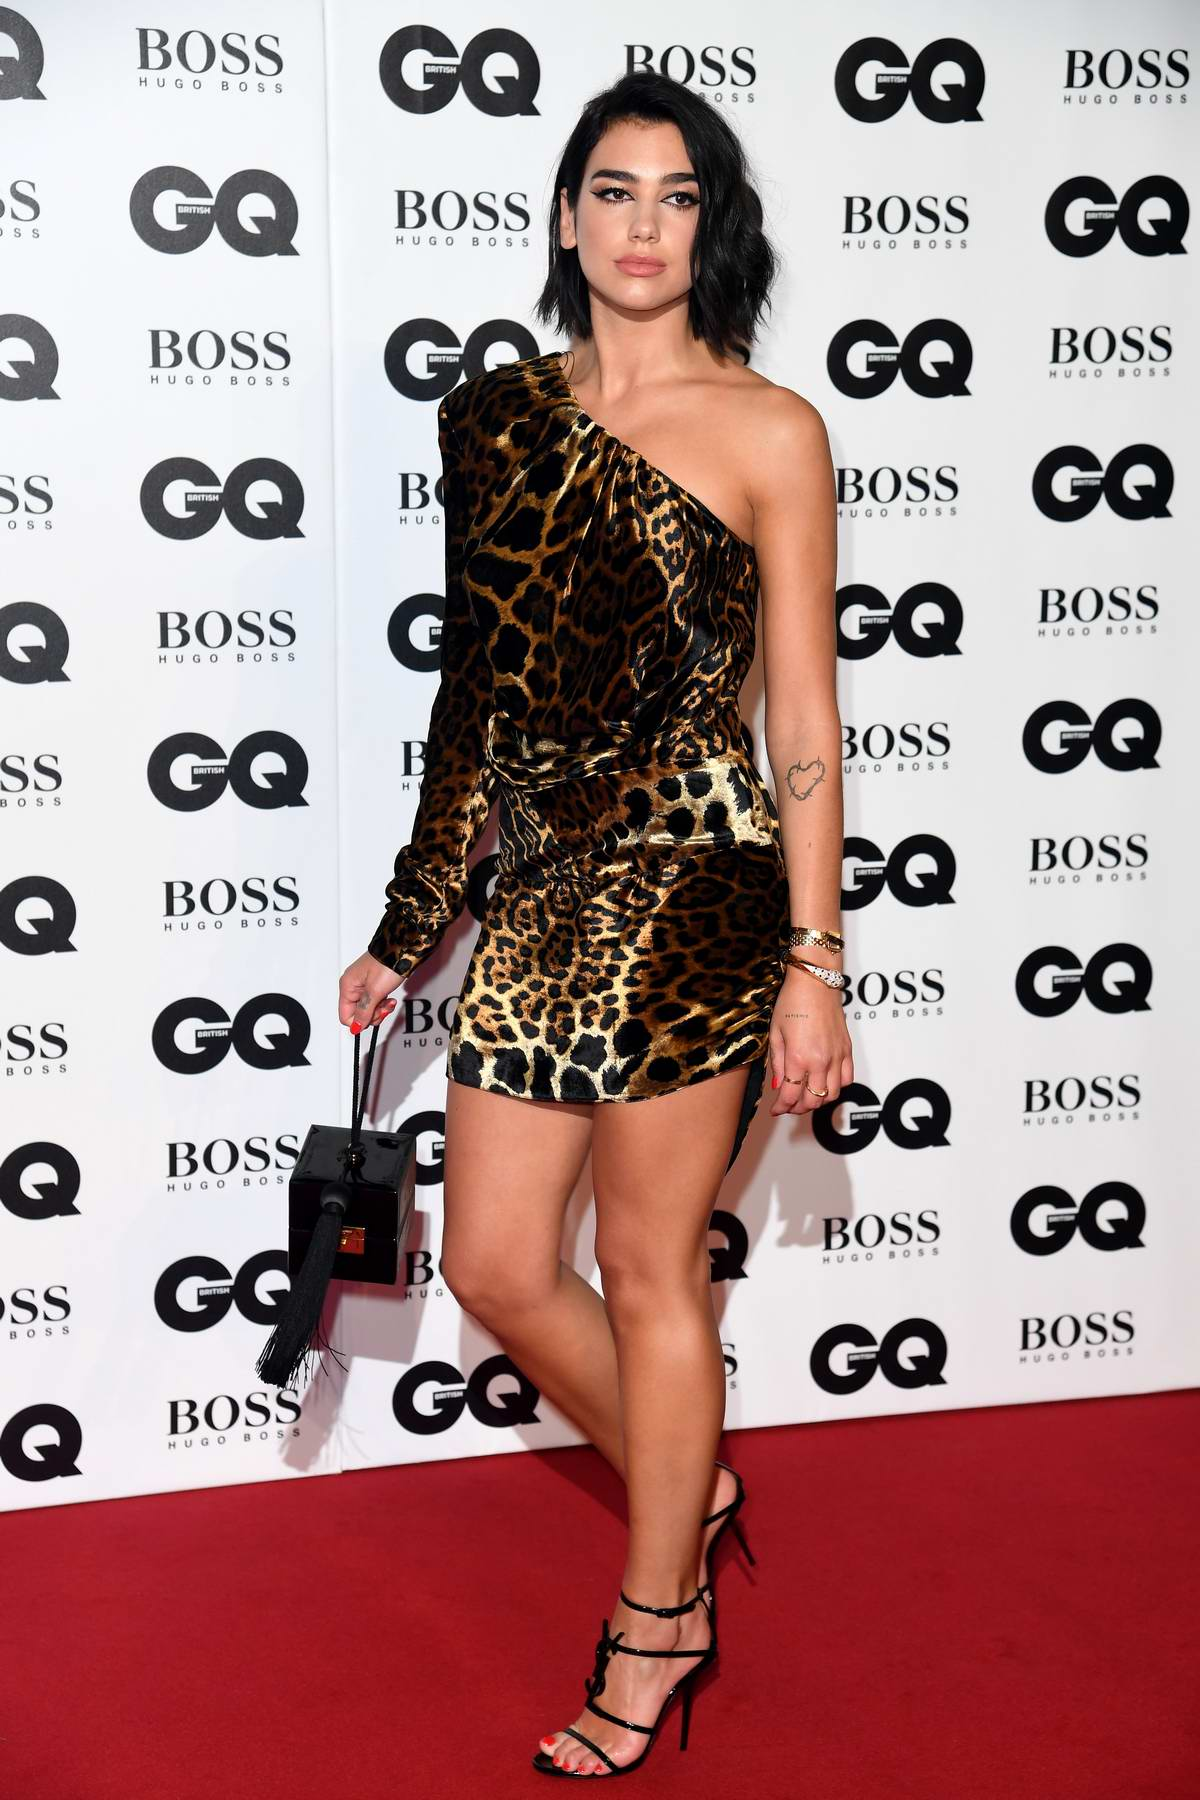 Dua Lipa attending the GQ Men of the Year Awards 2018 at the Tate Modern in London, UK